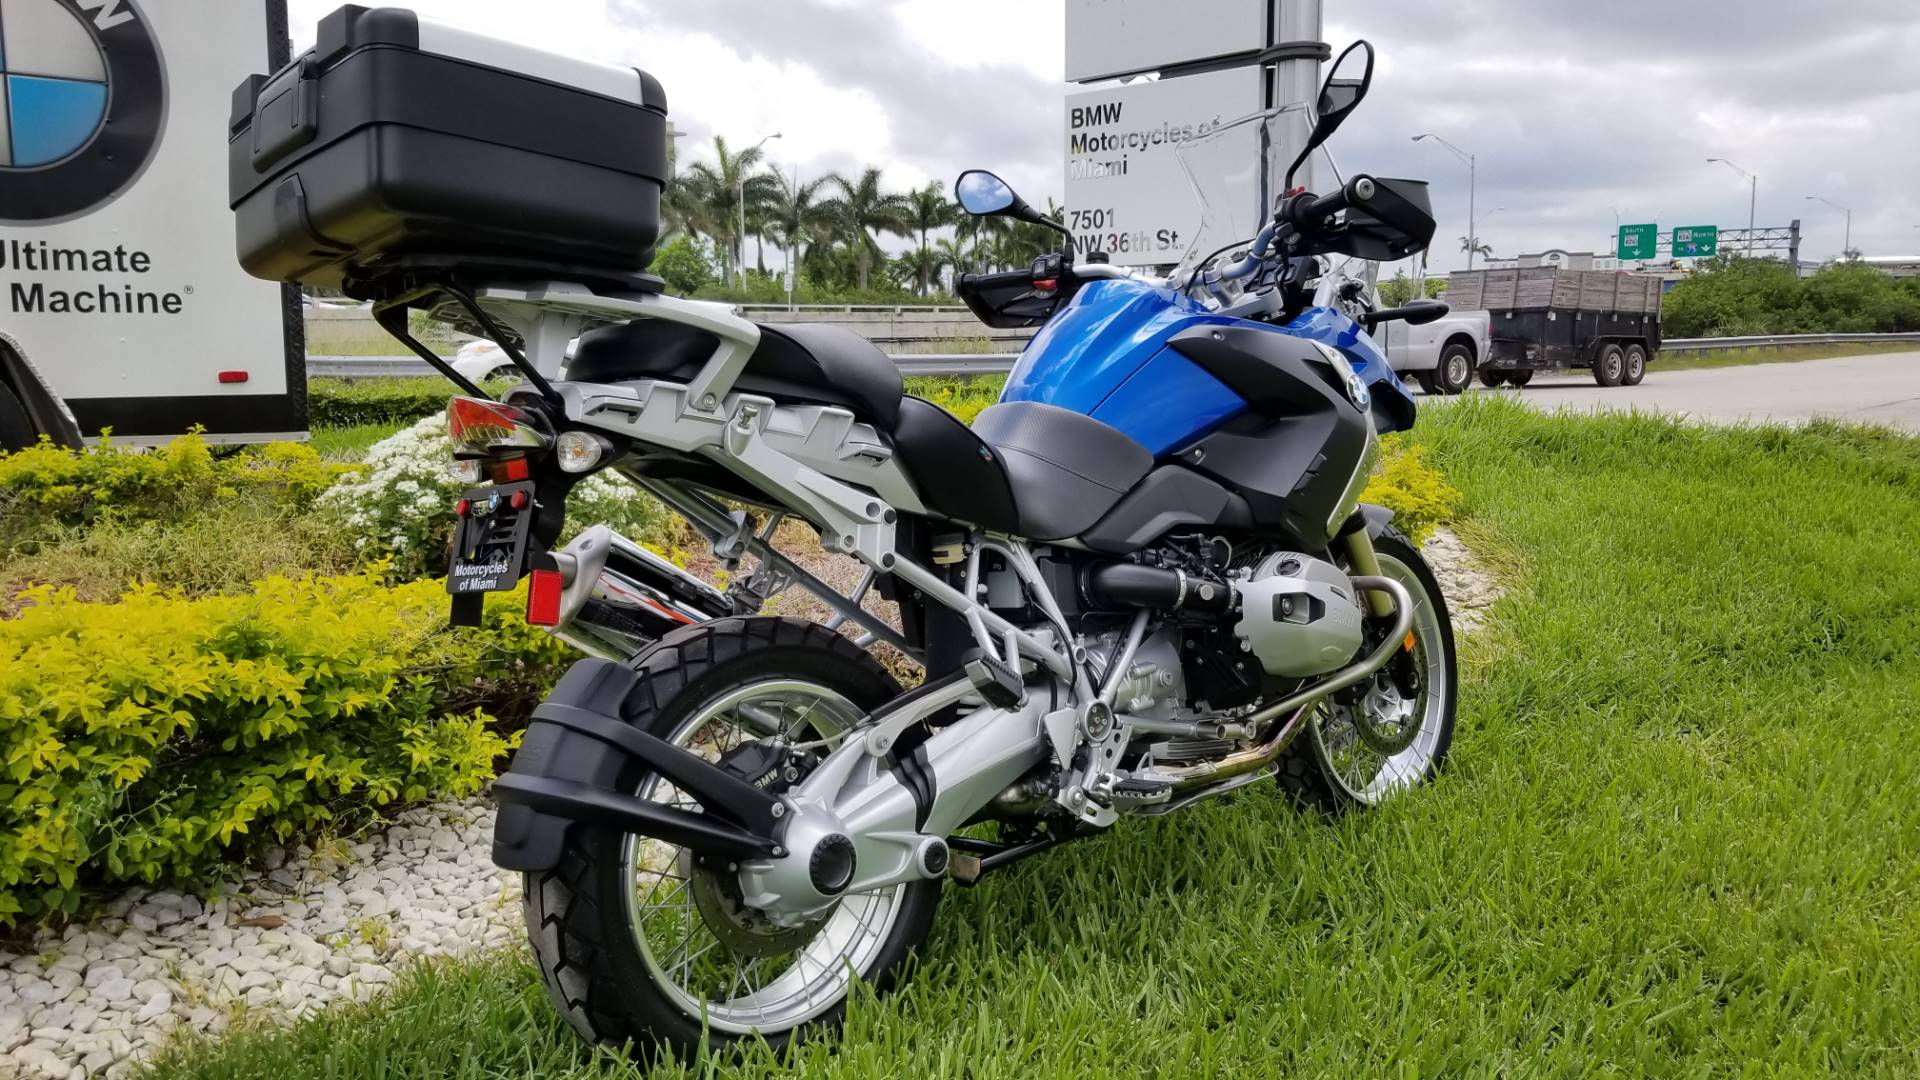 Used 2012 BMW R 1200 GS For Sale, BMW R 1200GS For Sale, BMW Motorcycle r1200GS, BMW R1200GS, BMW, GS, DUAL. - Photo 22